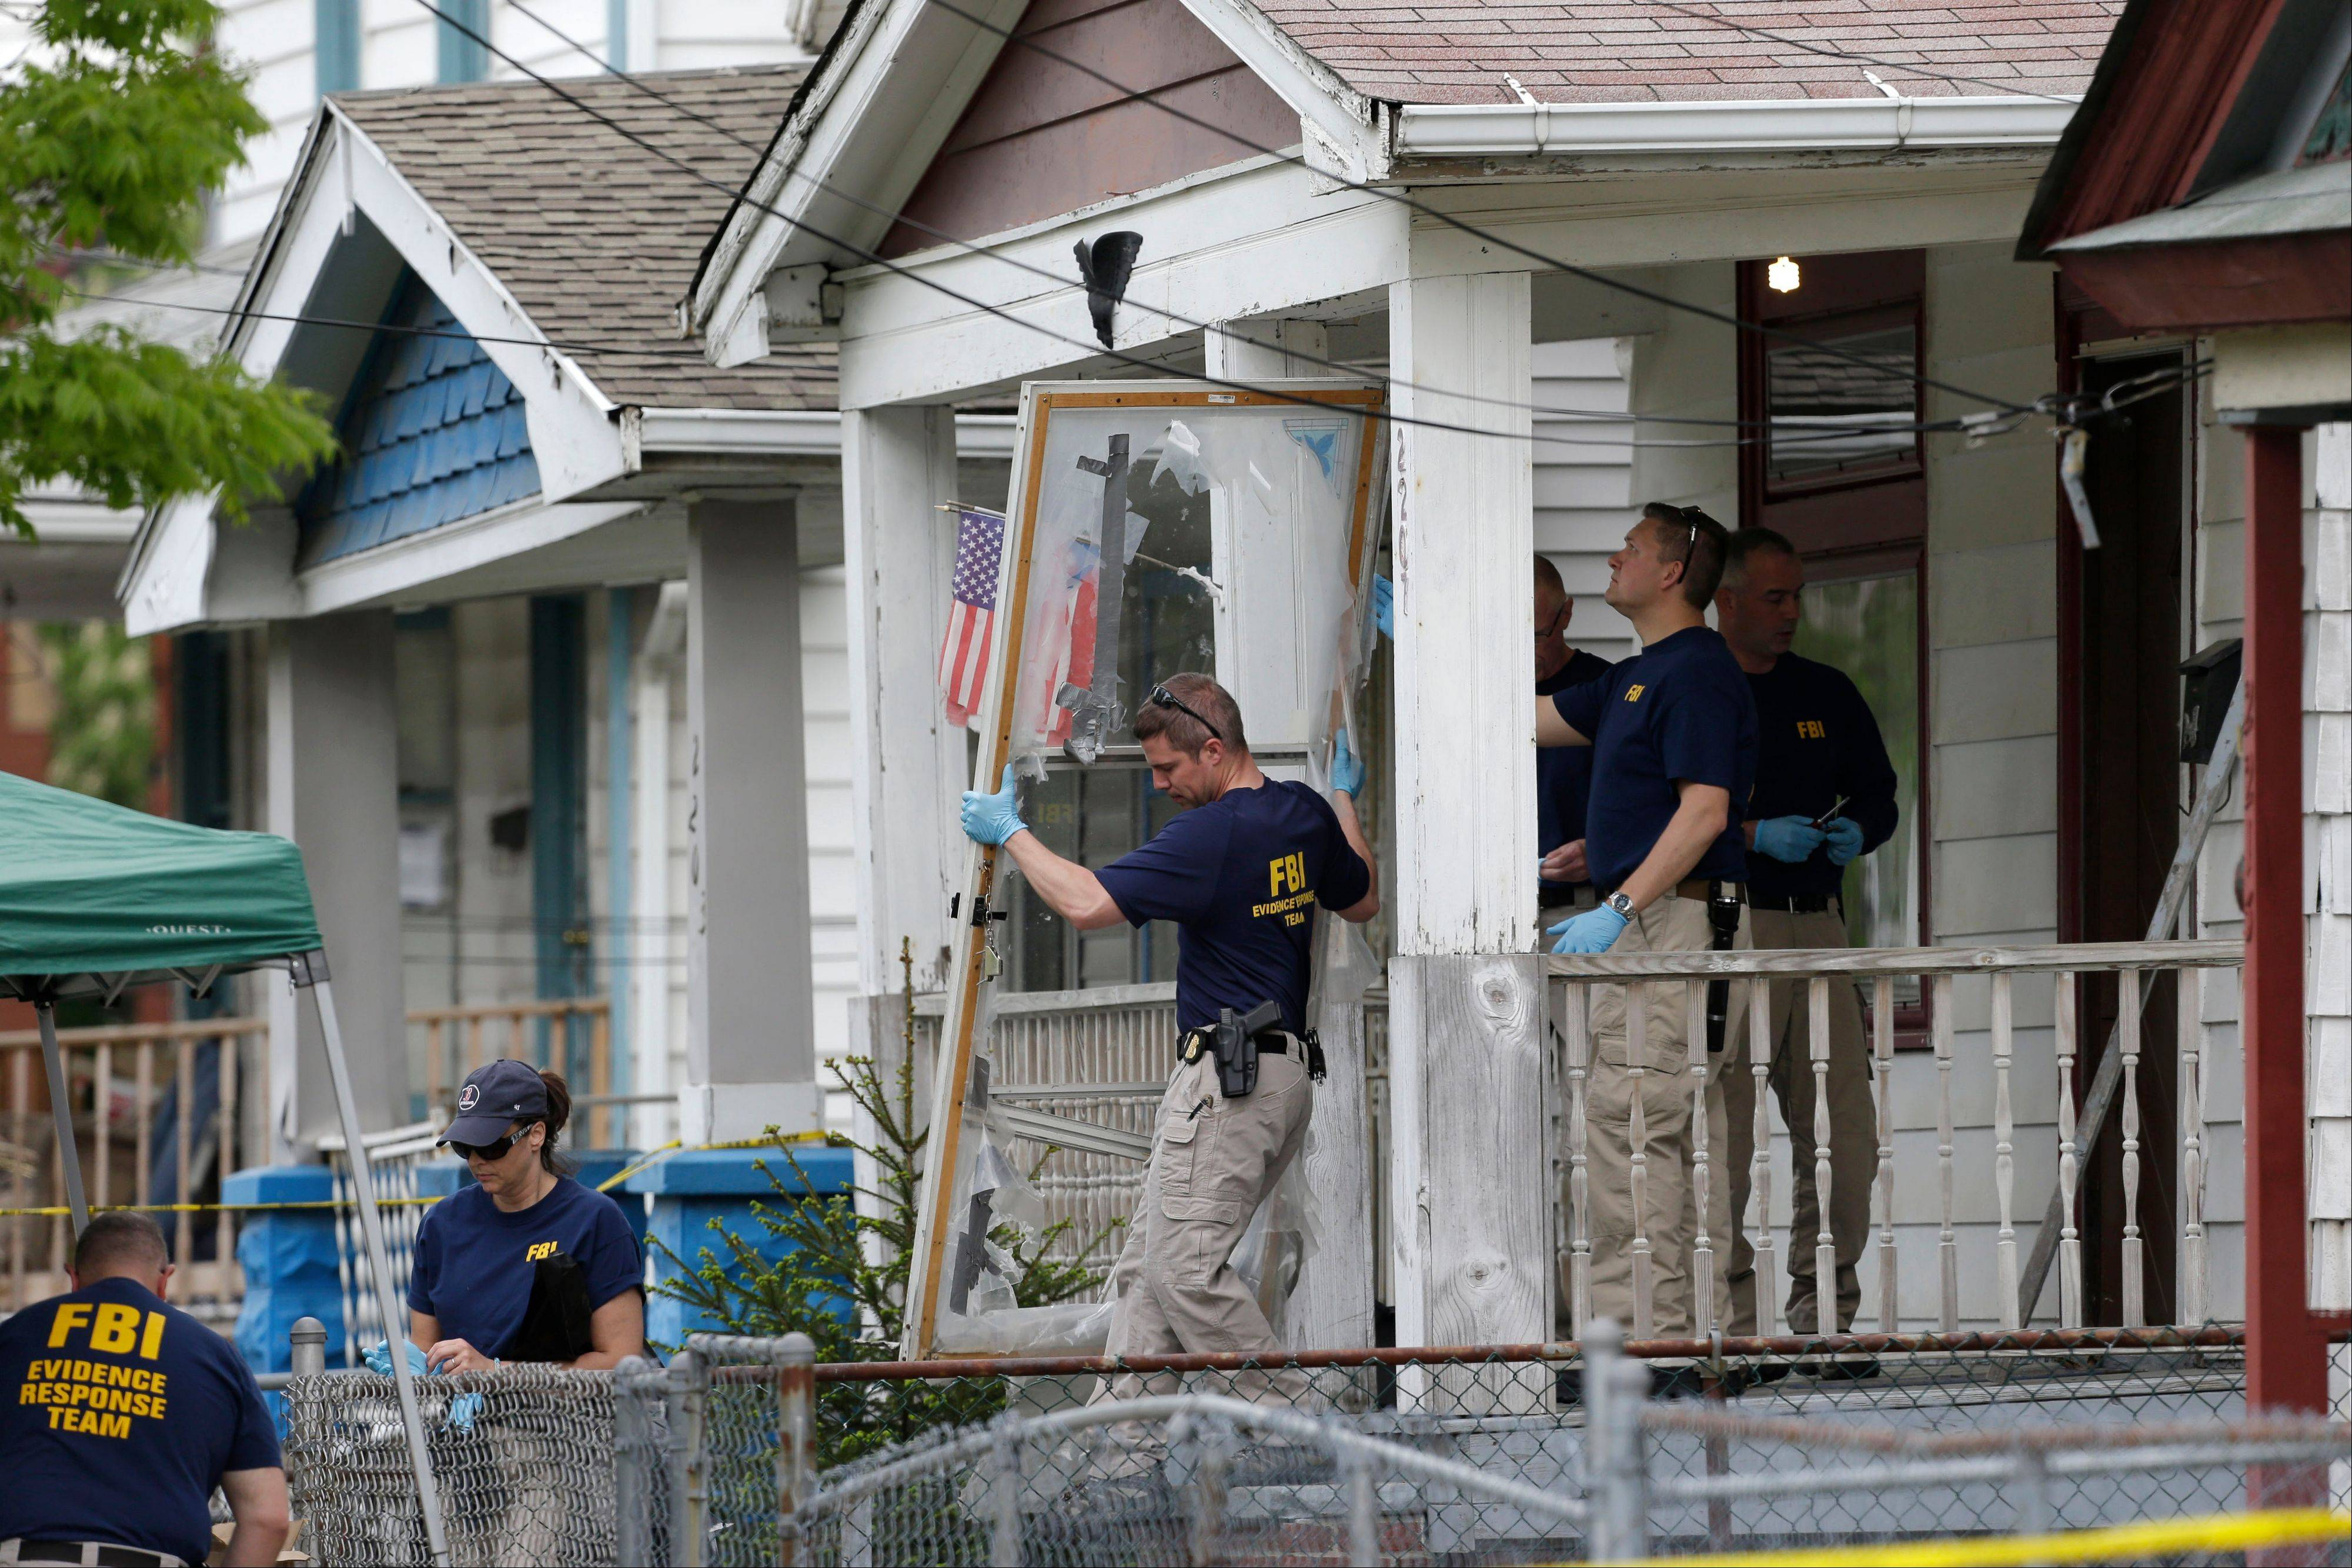 Members of the FBI evidence response team carry out the front screen door from the house where three women were held captive in Cleveland. Cleveland officials are trying to keep the house intact until the trial of the women's suspected abductor is concluded.